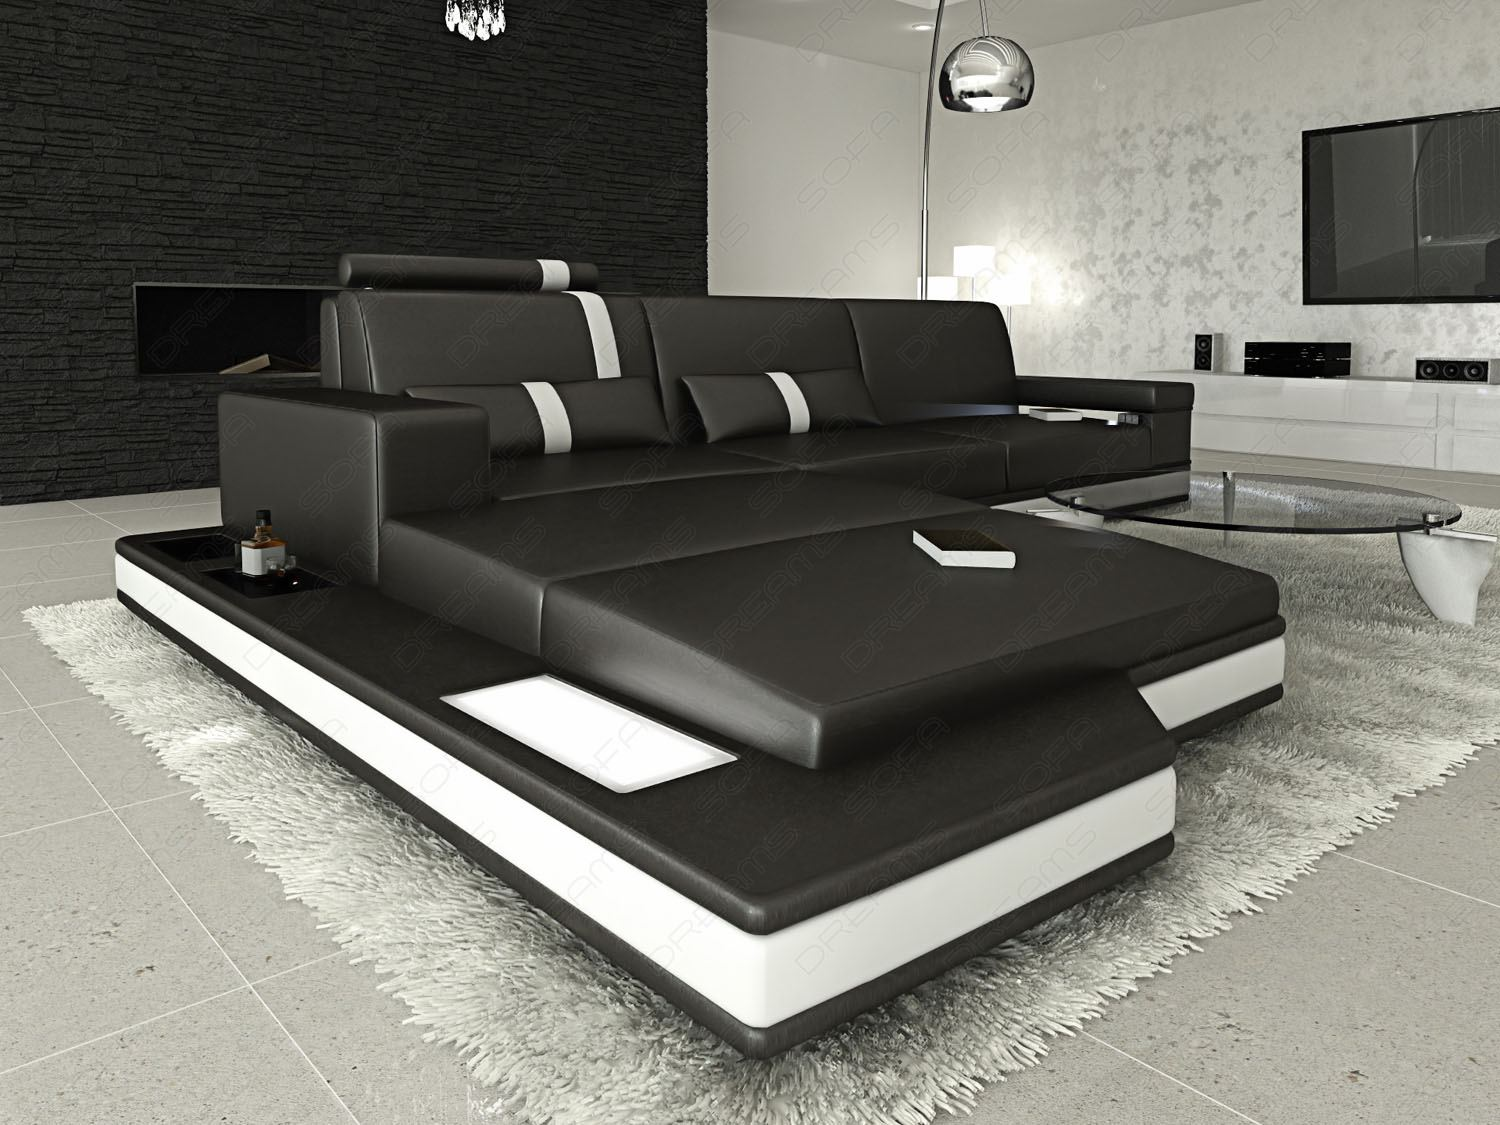 ledersofa messana l form schwarz weiss licht design luxus sofa eckcouch ebay. Black Bedroom Furniture Sets. Home Design Ideas